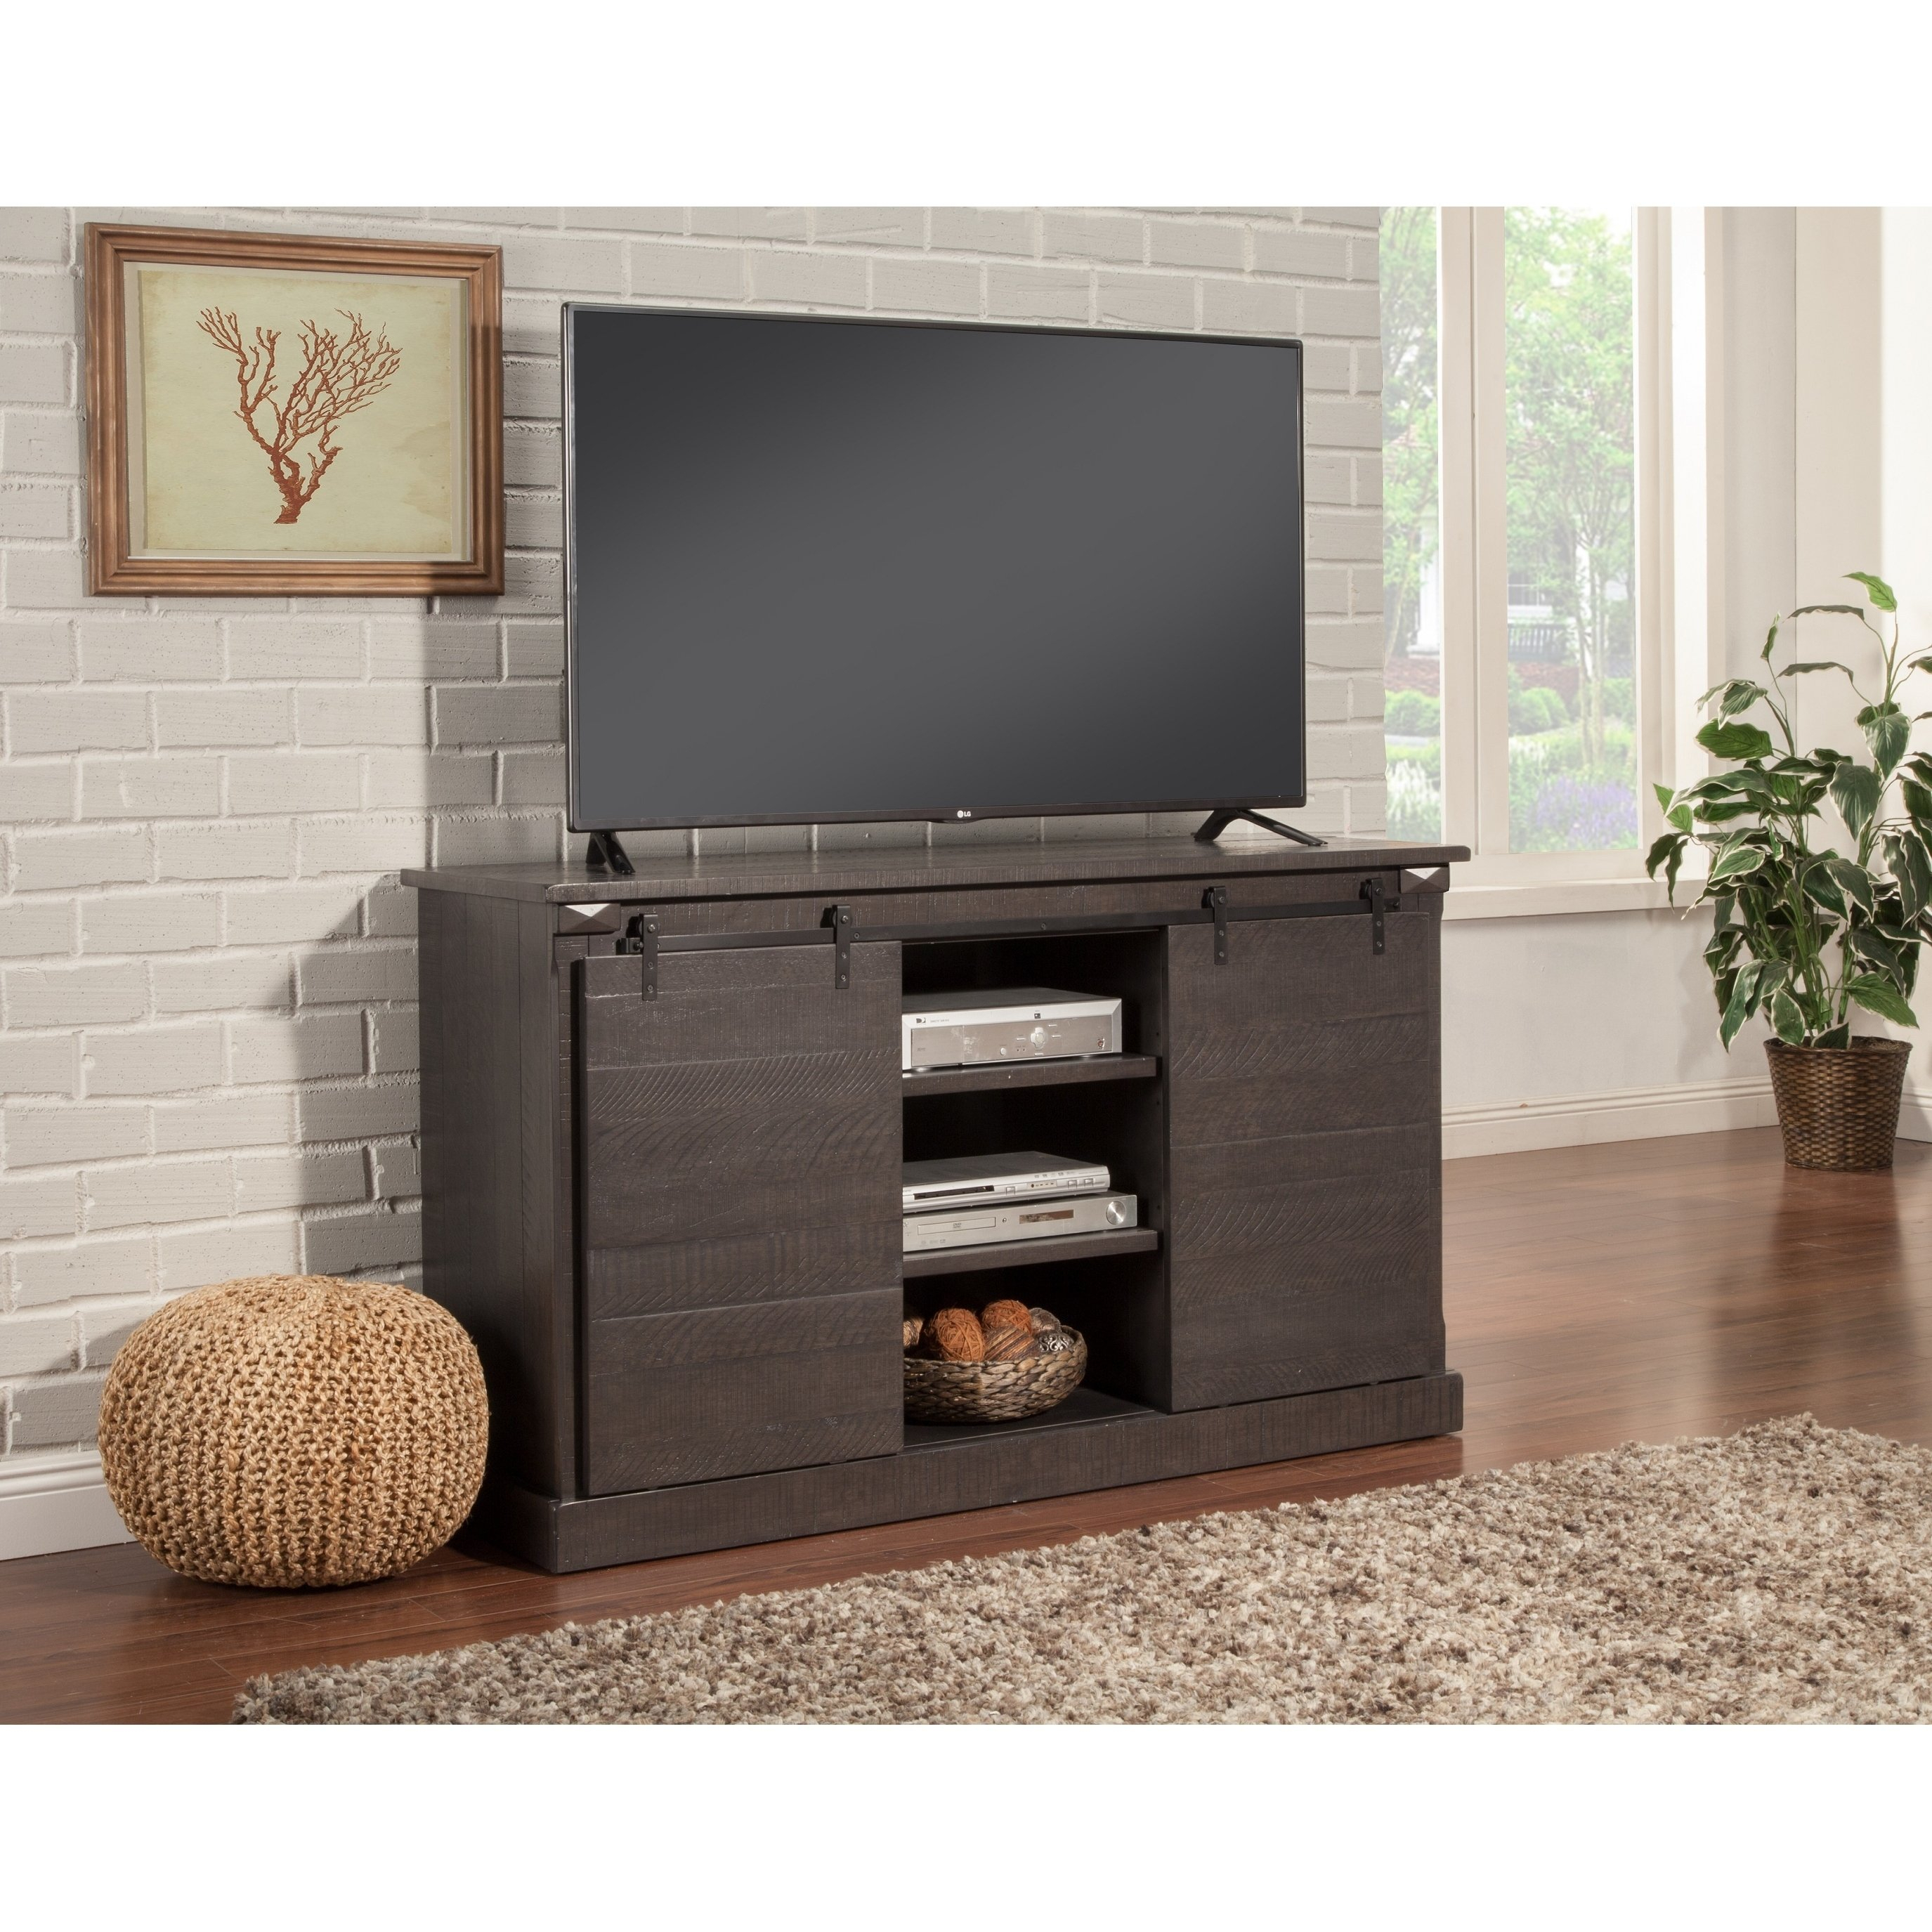 Buy Grey, 42 – 60 Inches Tv Stands & Entertainment Centers Online At Pertaining To Rowan 45 Inch Tv Stands (View 16 of 30)